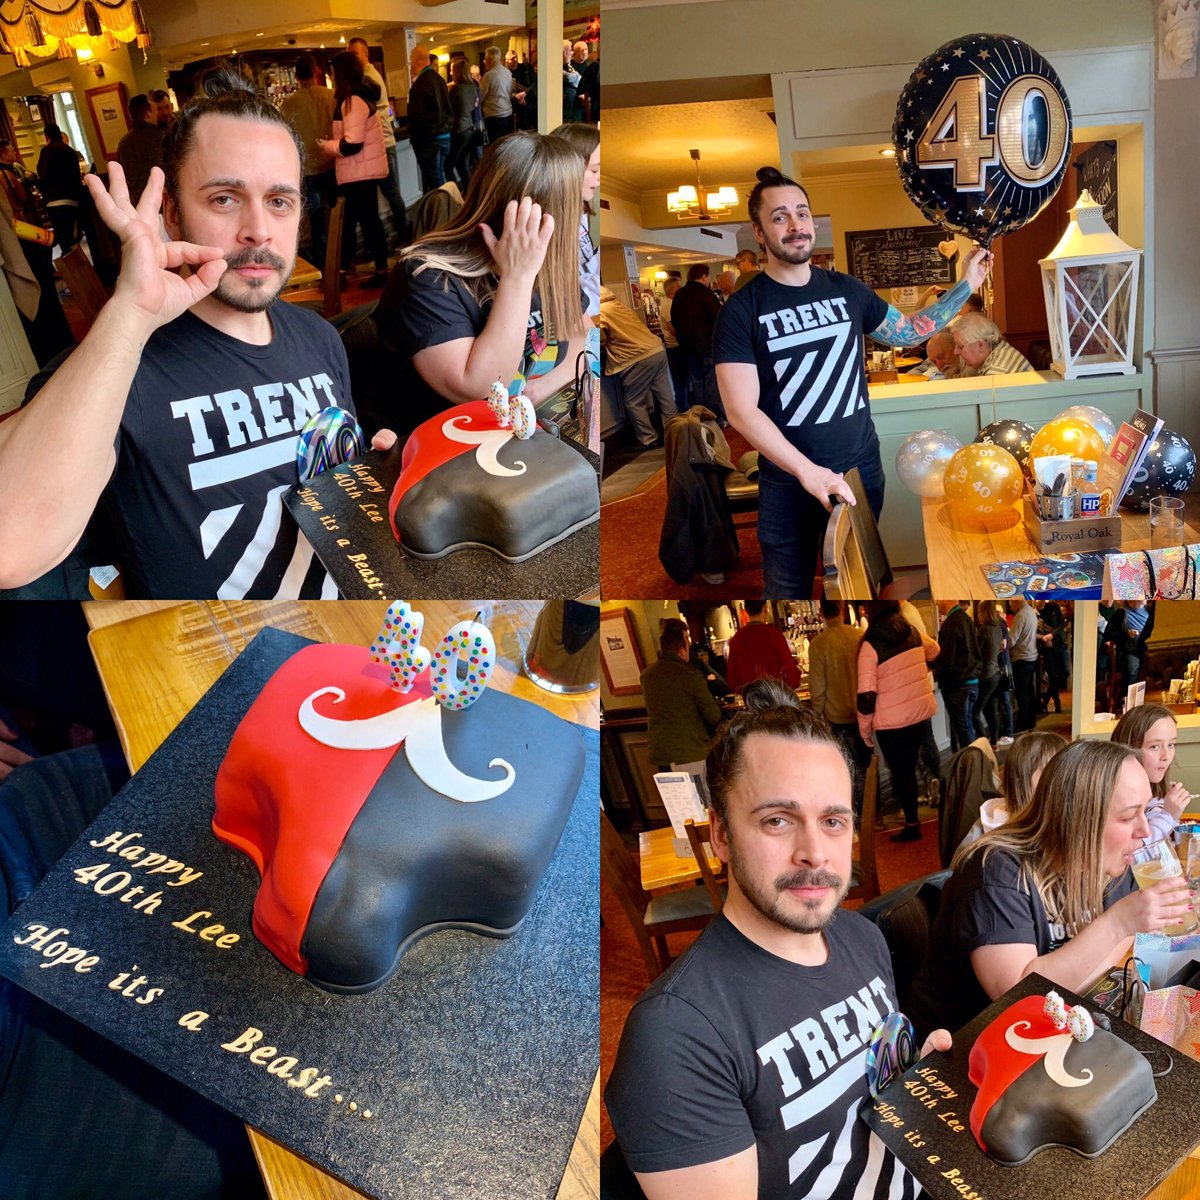 So I got given this sweet @trentseven @Tyler_Bate cake today. Can you get any sicker. . #WWE #WWENXT #wrestling #britishstrongstyle #trent7 #tylerbatepic.twitter.com/vvoNRvR4hh